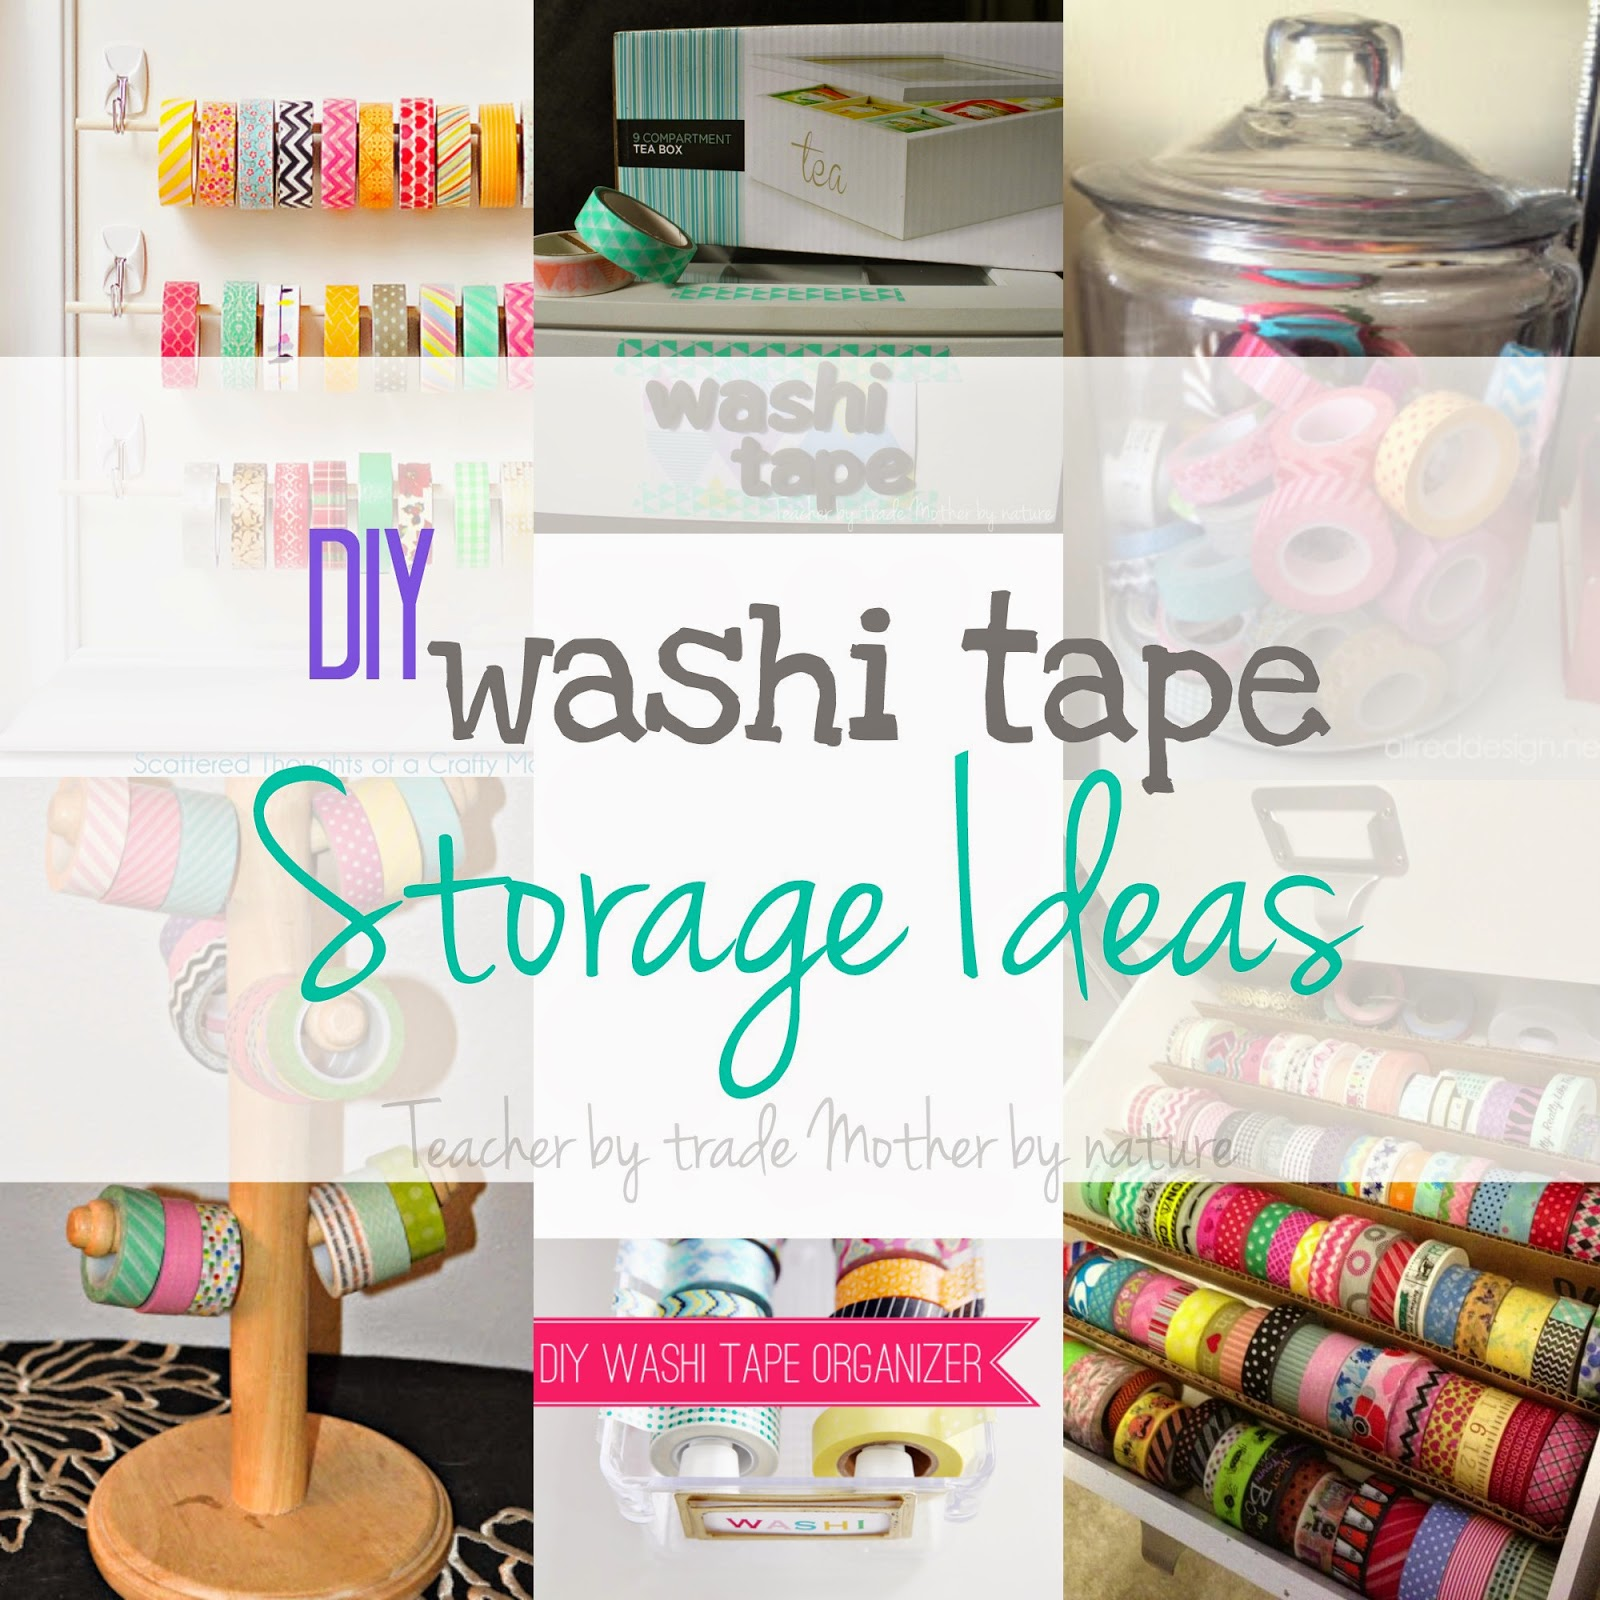 Washi Tape Diy Diy: Washi Tape Storage Ideas - Teacher By Trade, Mother ...